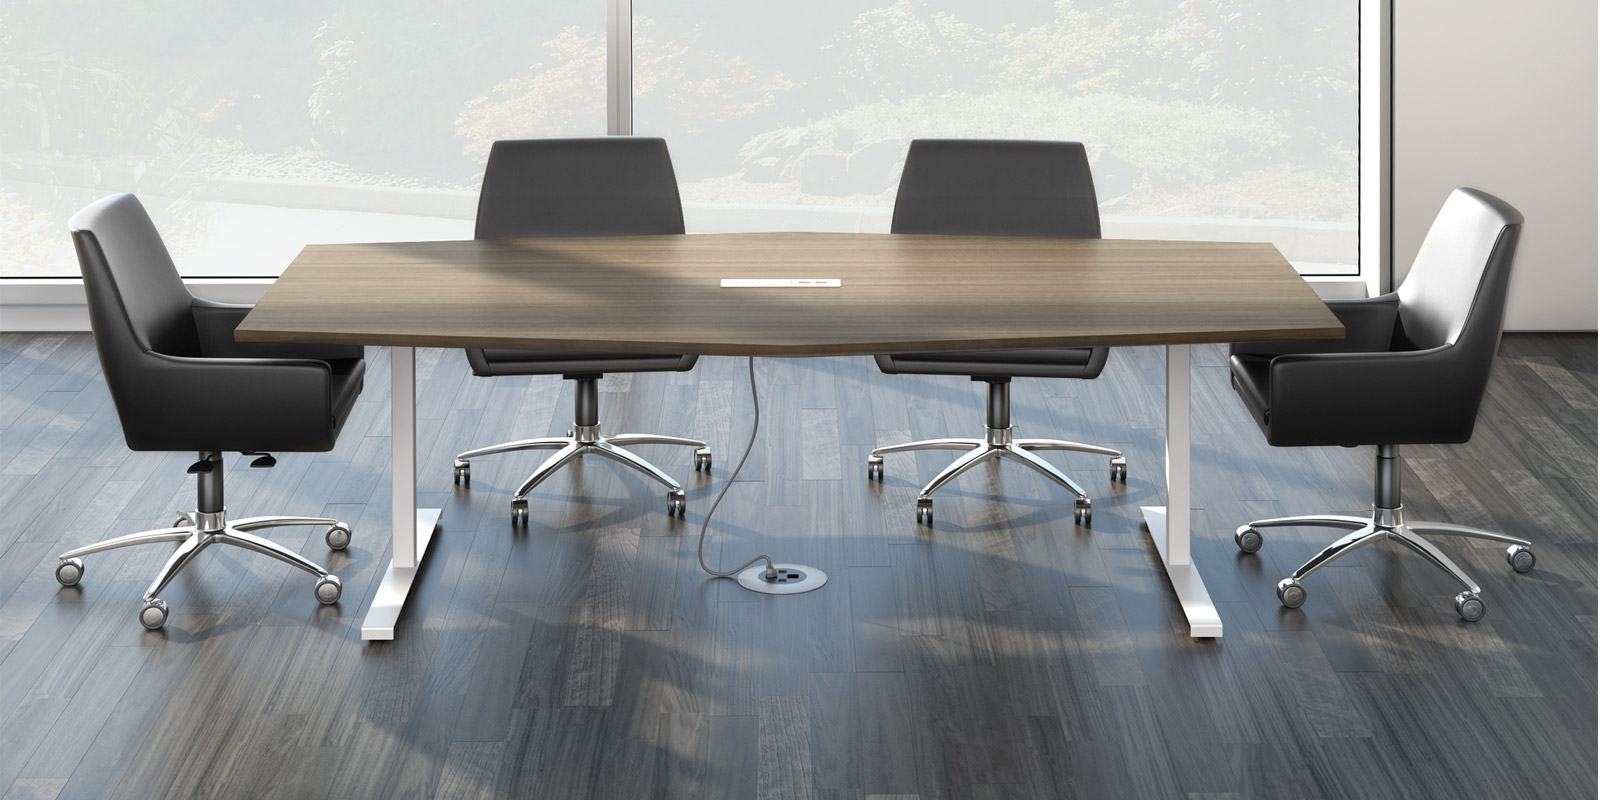 WoW Watson Seven Office Furniture Enhance Your Open Office Designs - Gray conference table